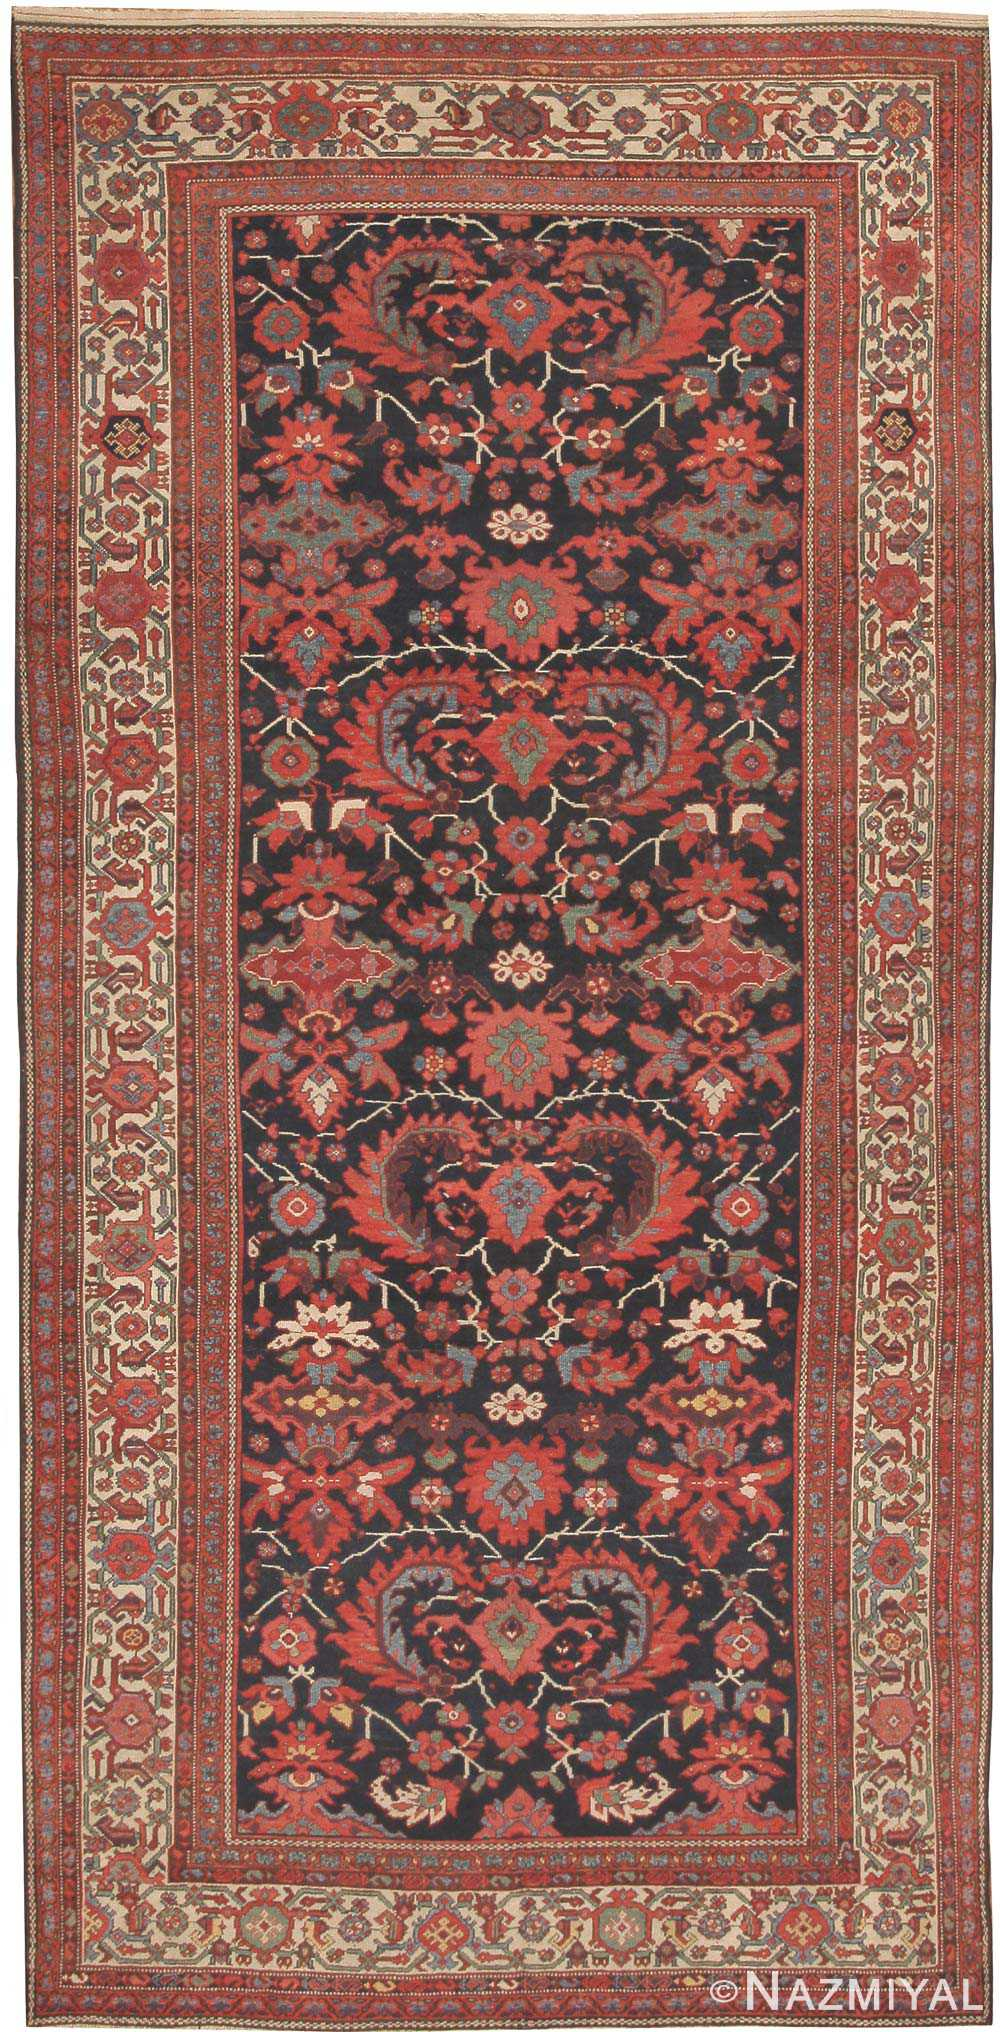 Antique Malayer Persian Rug #44716 Detail/Large View - By Nazmiyal